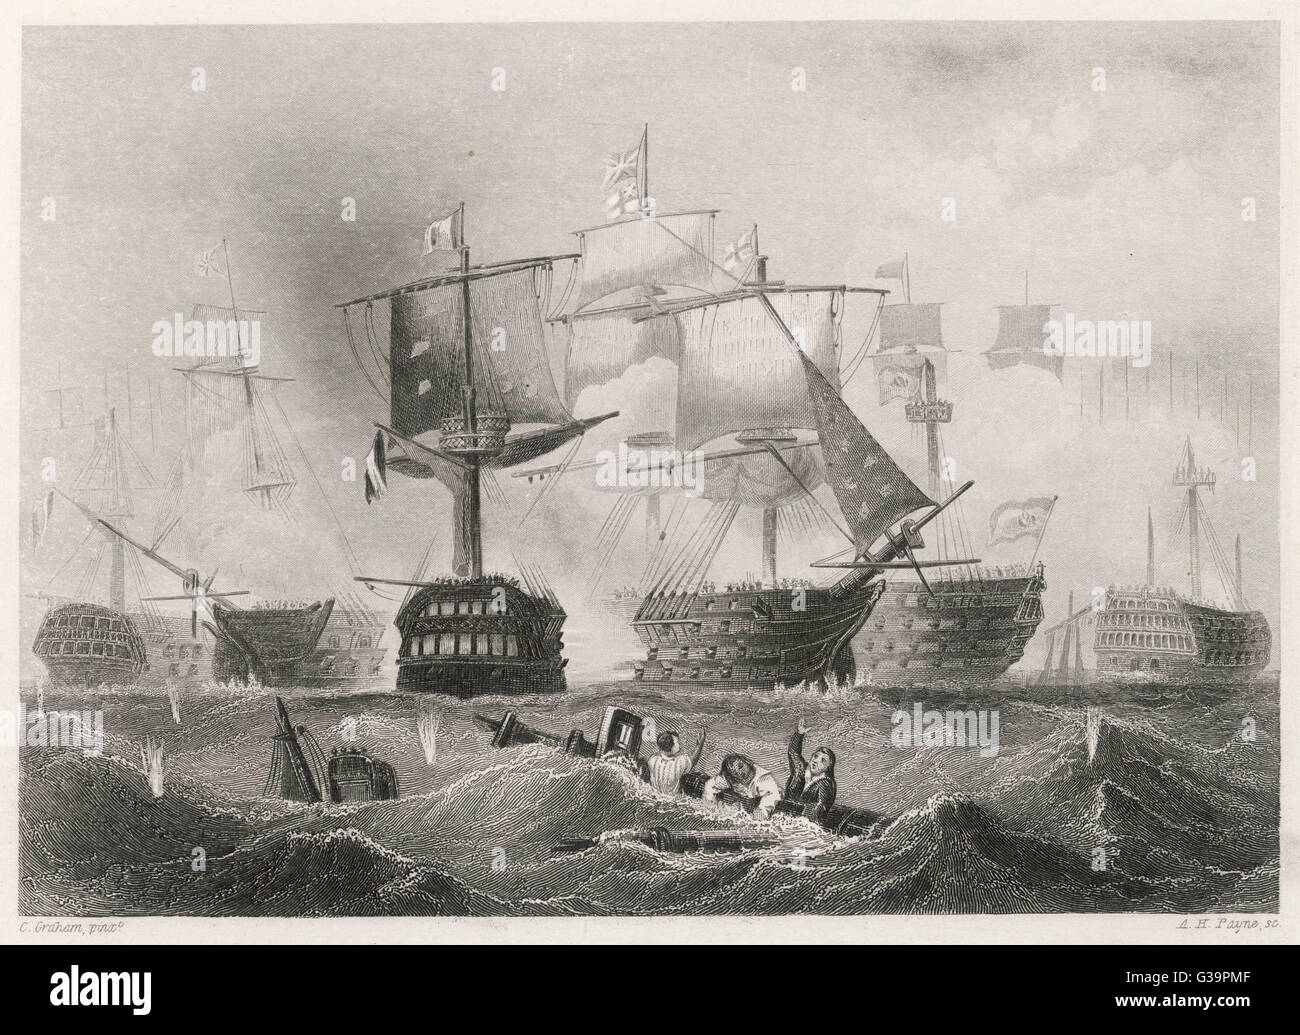 The battle rages          Date: 21 October 1805 - Stock Image